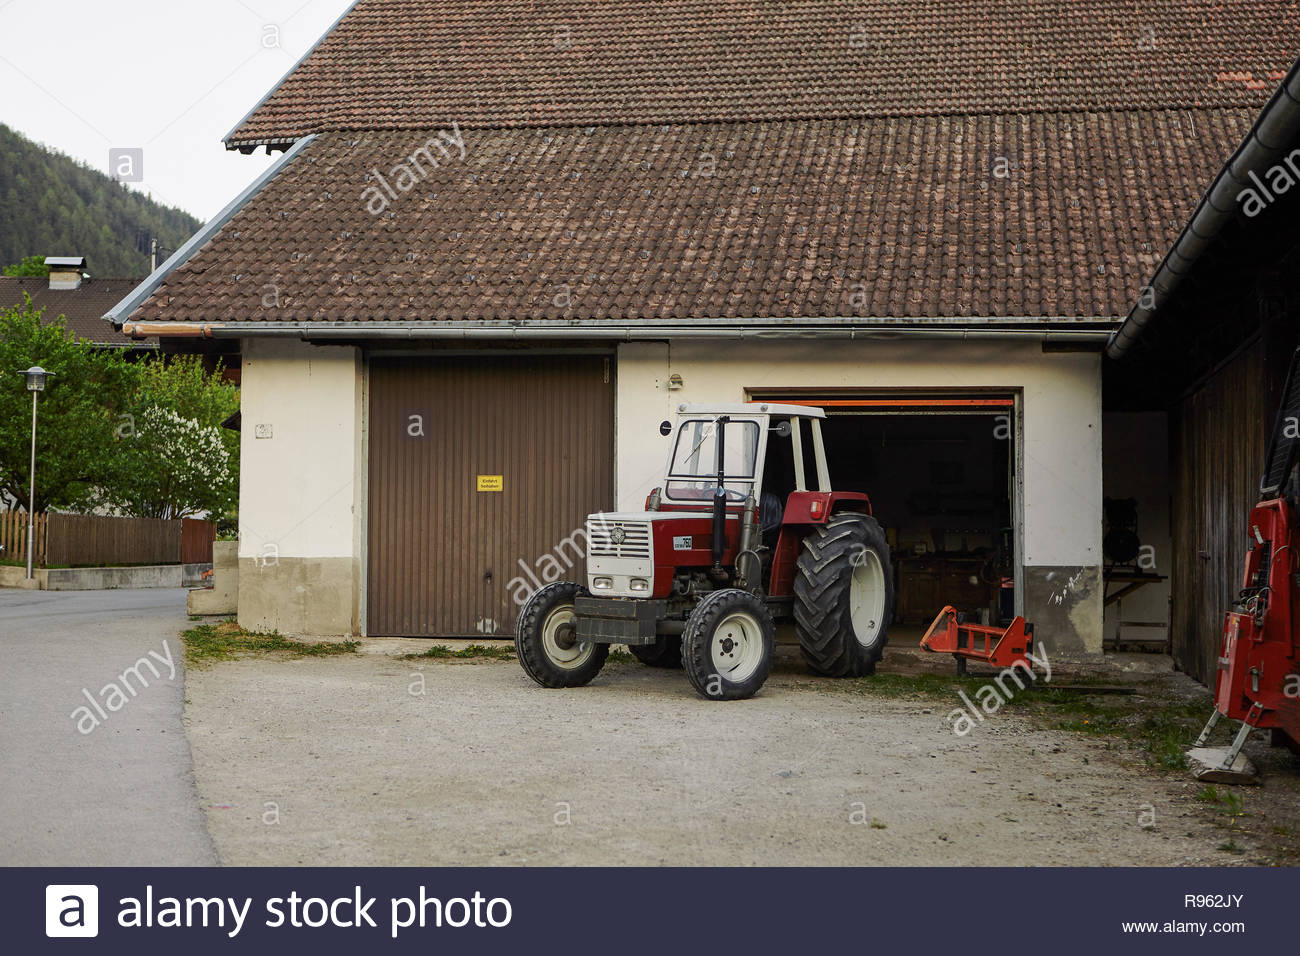 Ainet, Tyrol, Austria May 10, 2011: Barn and red tractor - Stock Image